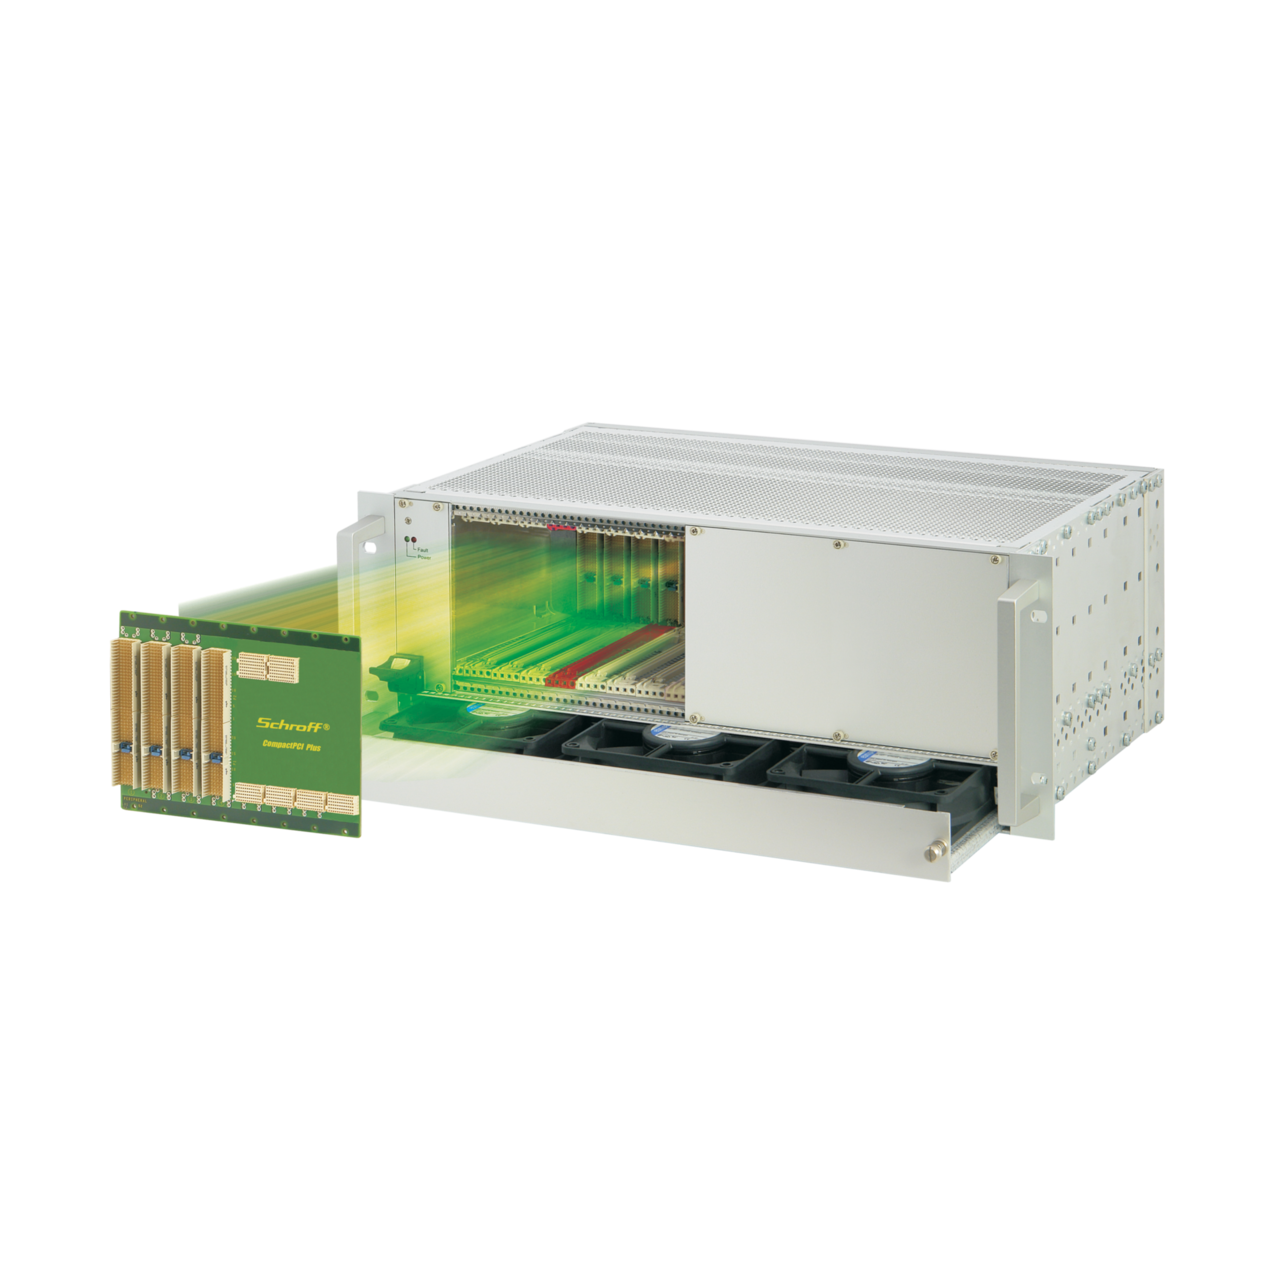 Image for CompactPCI PlusIO 4 U, 8 slot, with rear I/O, with 19